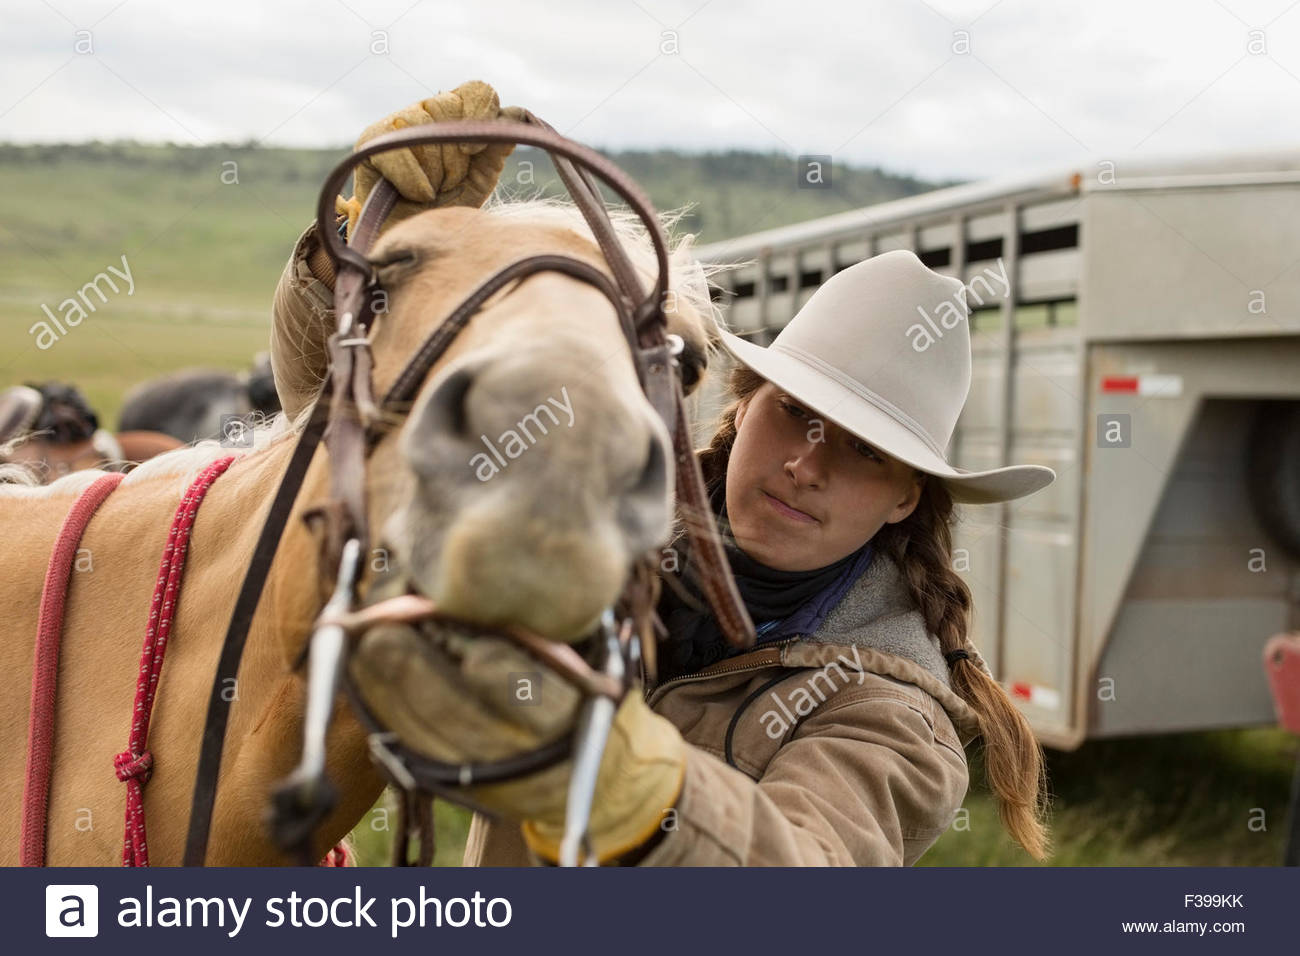 Female rancher placing bridle and bit on horse - Stock Image